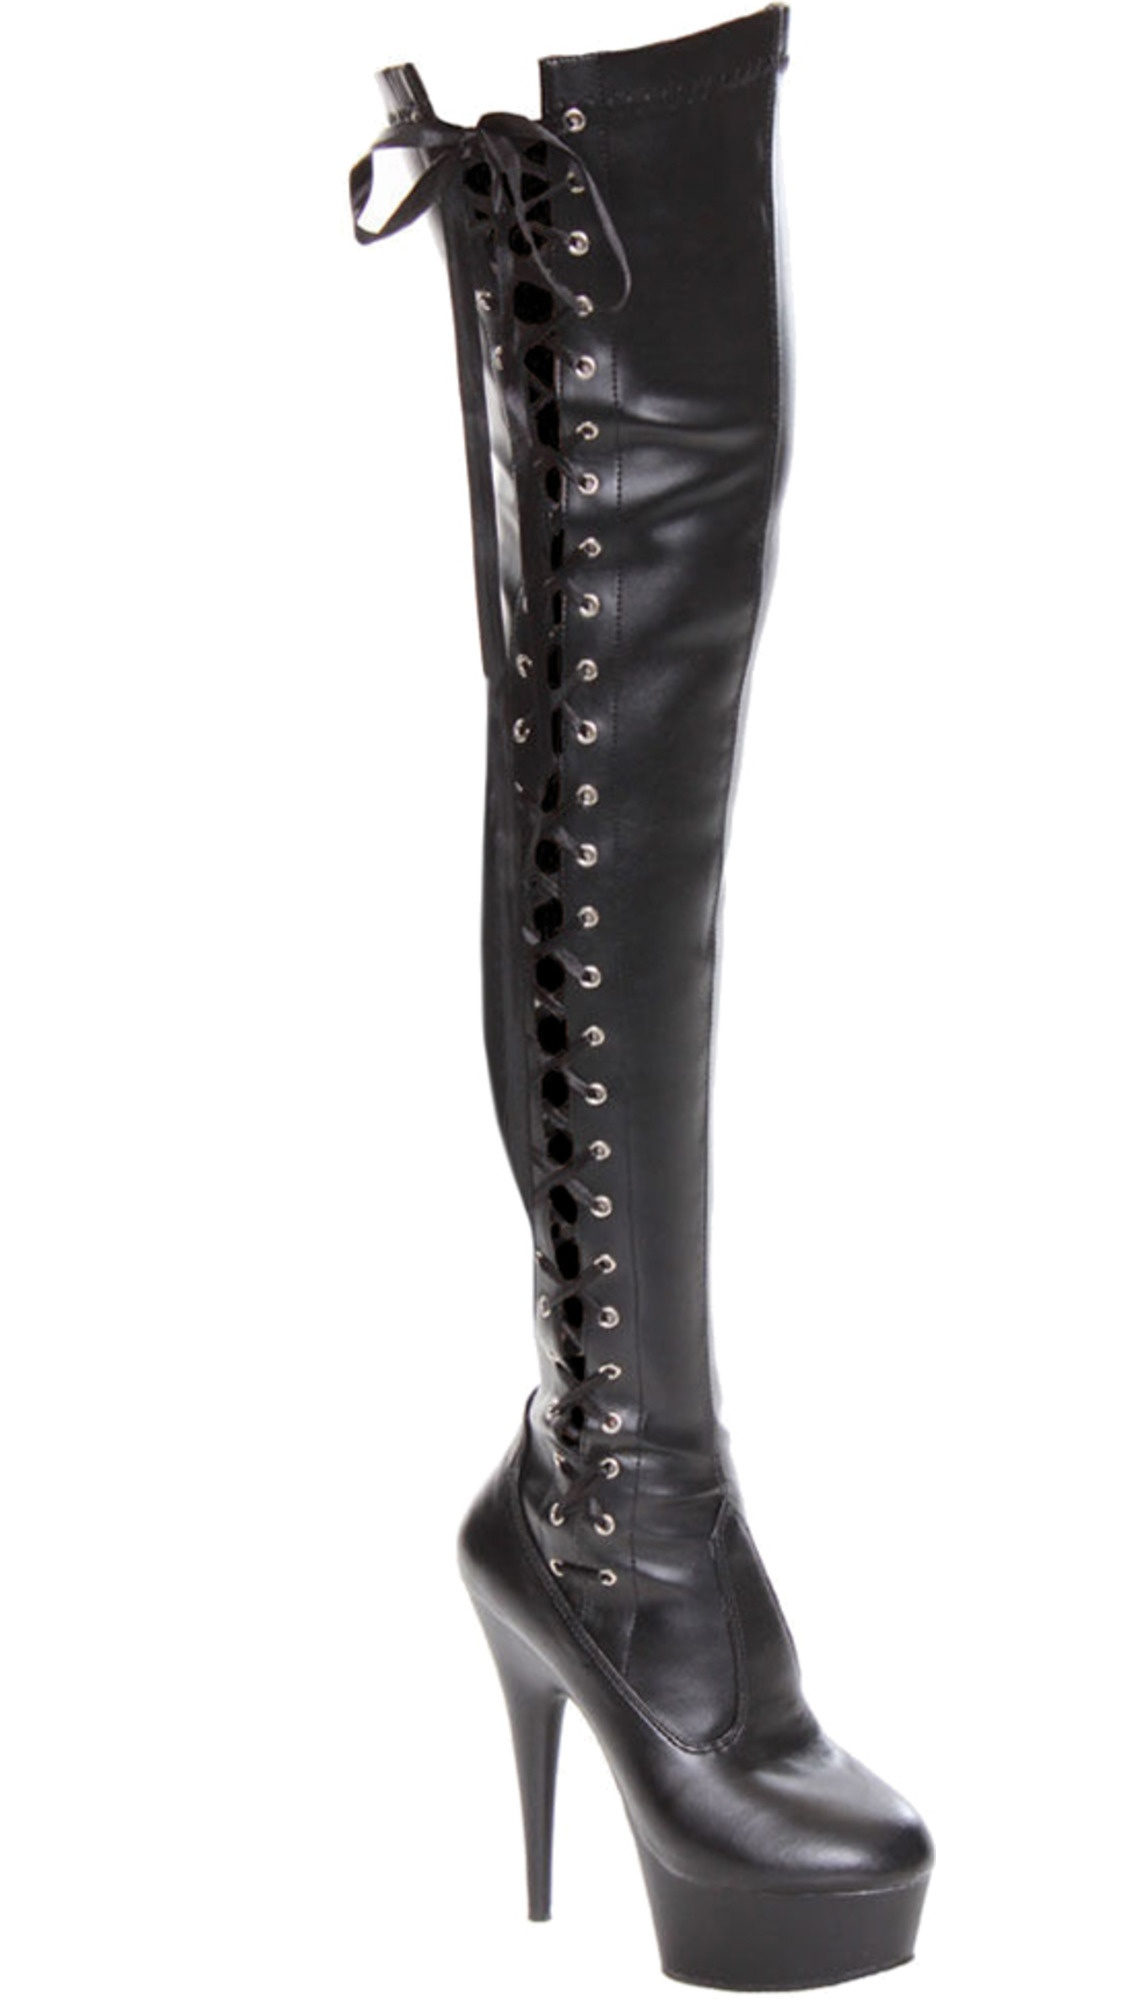 Womens Over The Knee Lace Up Boots Black Stretch Thigh High Zipper 6 Inch Heels